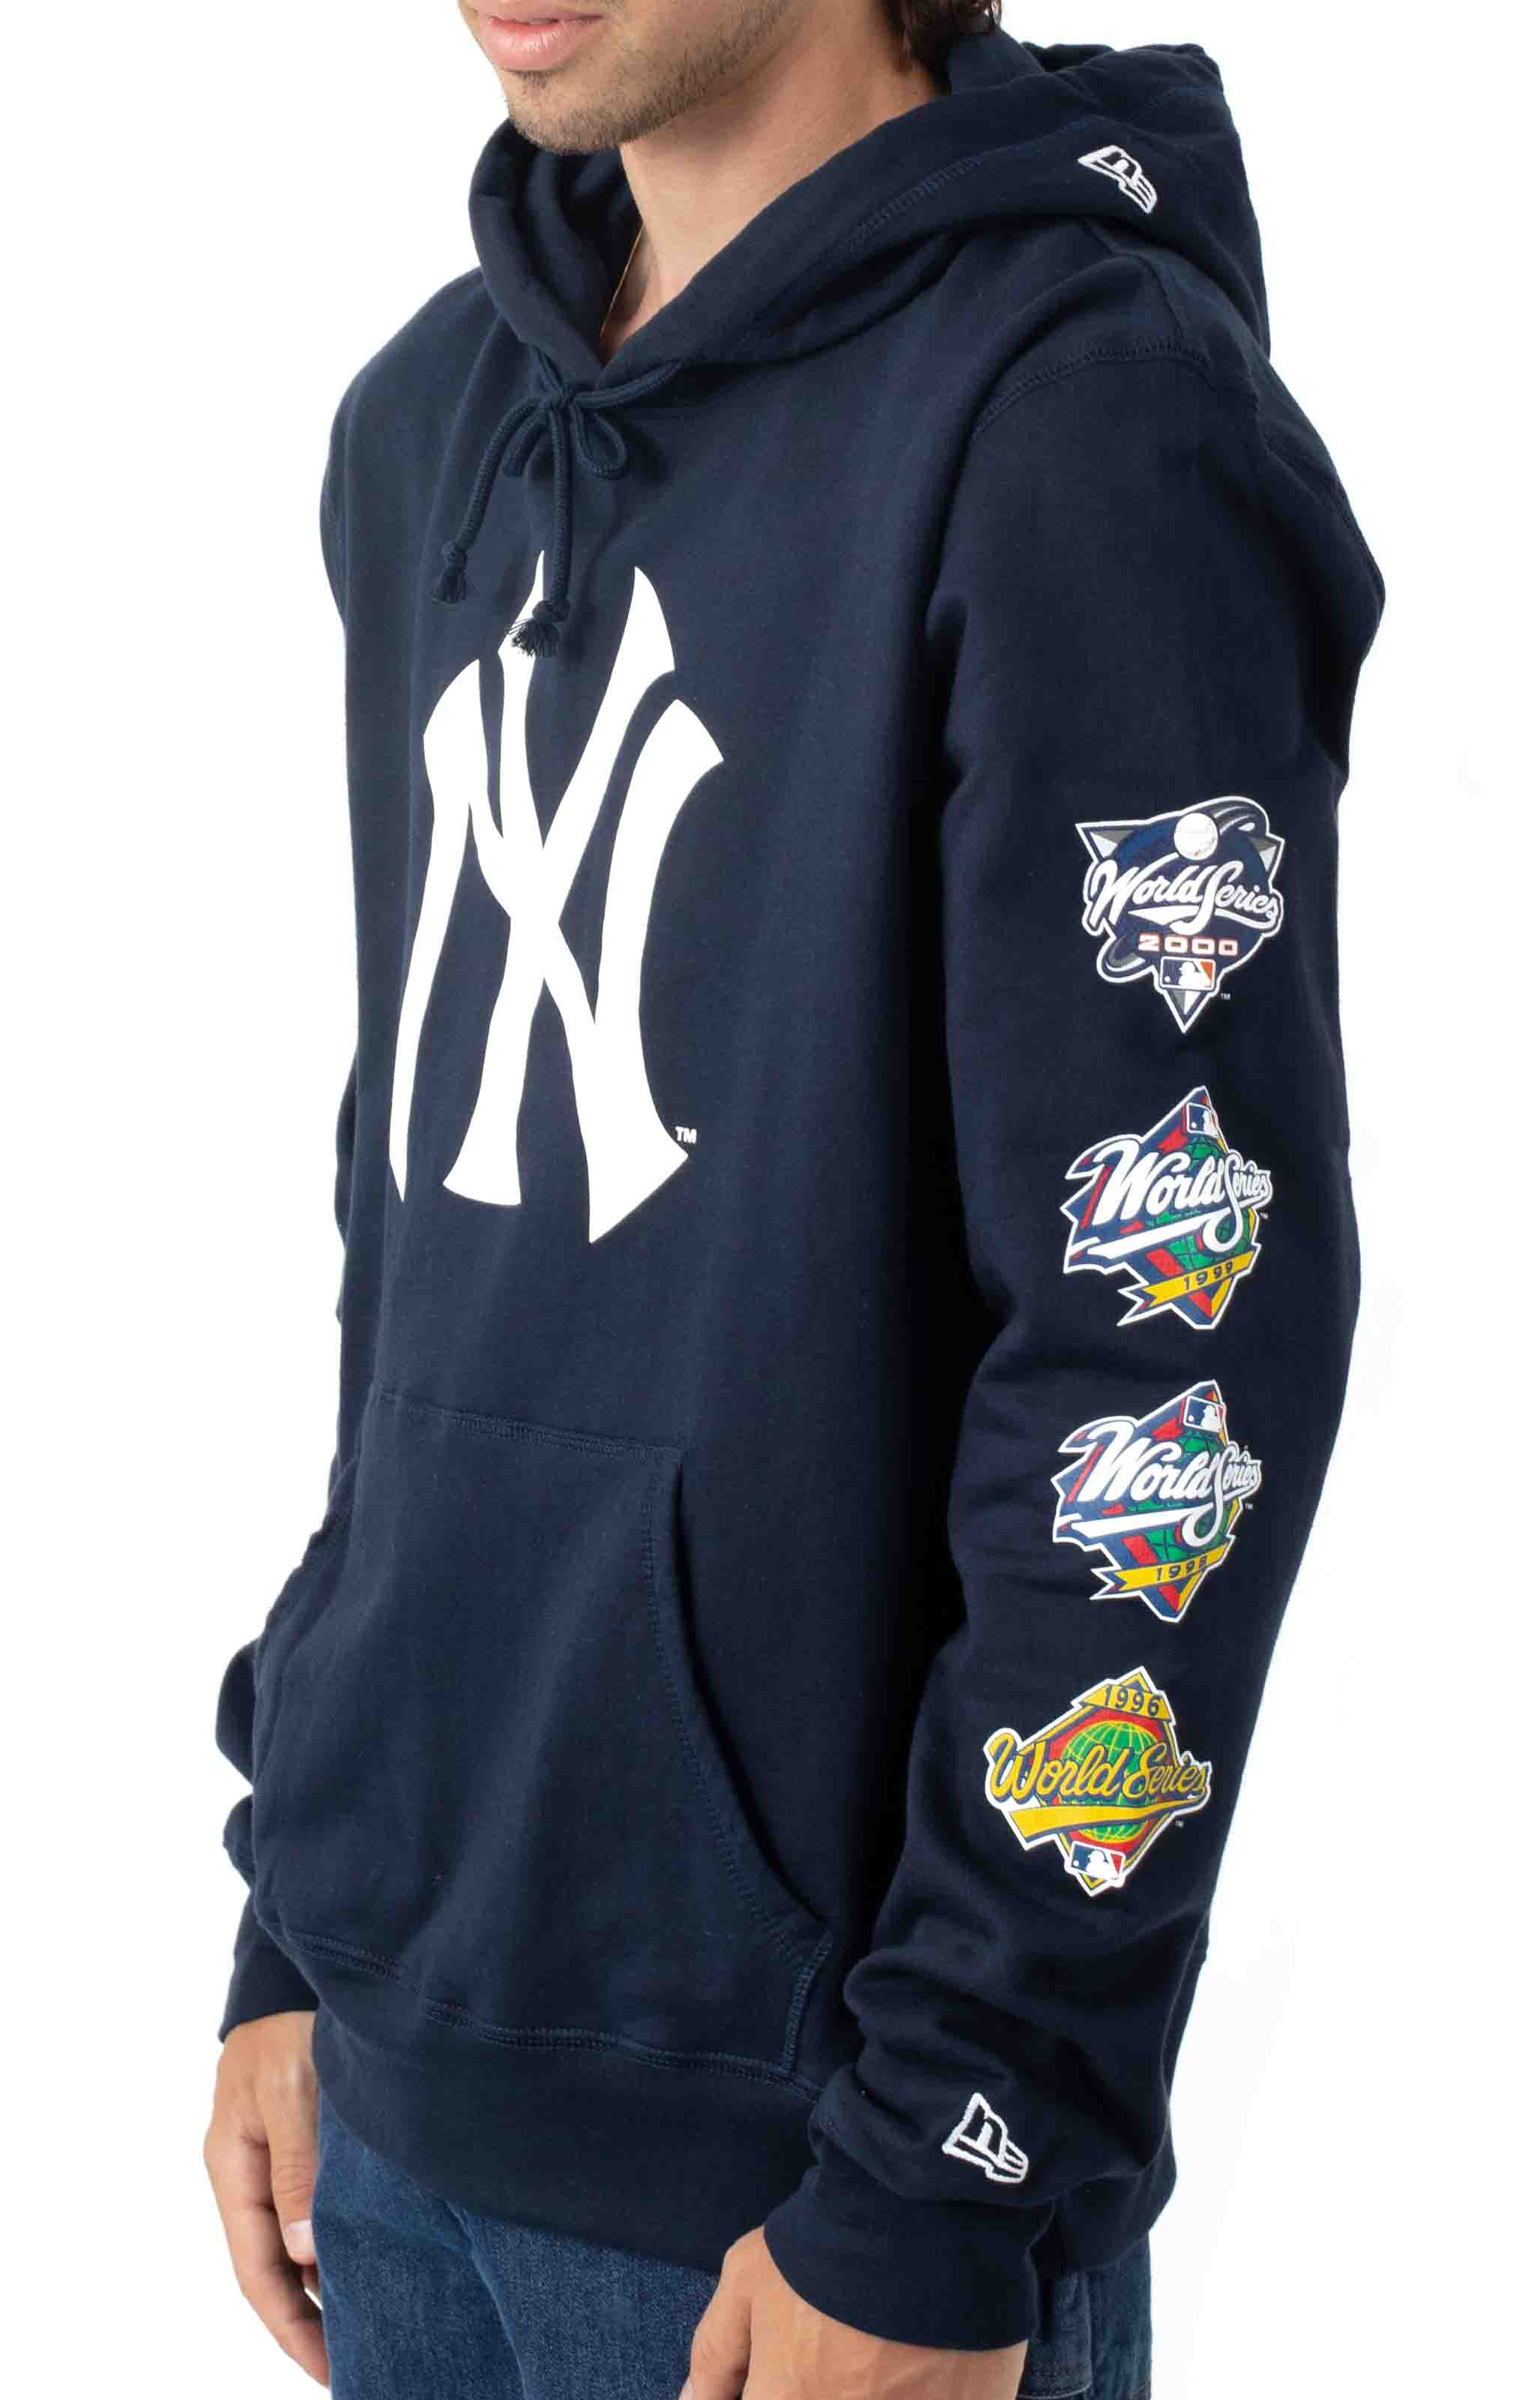 NY Yankees World Champions Pullover Hoodie - Navy 2